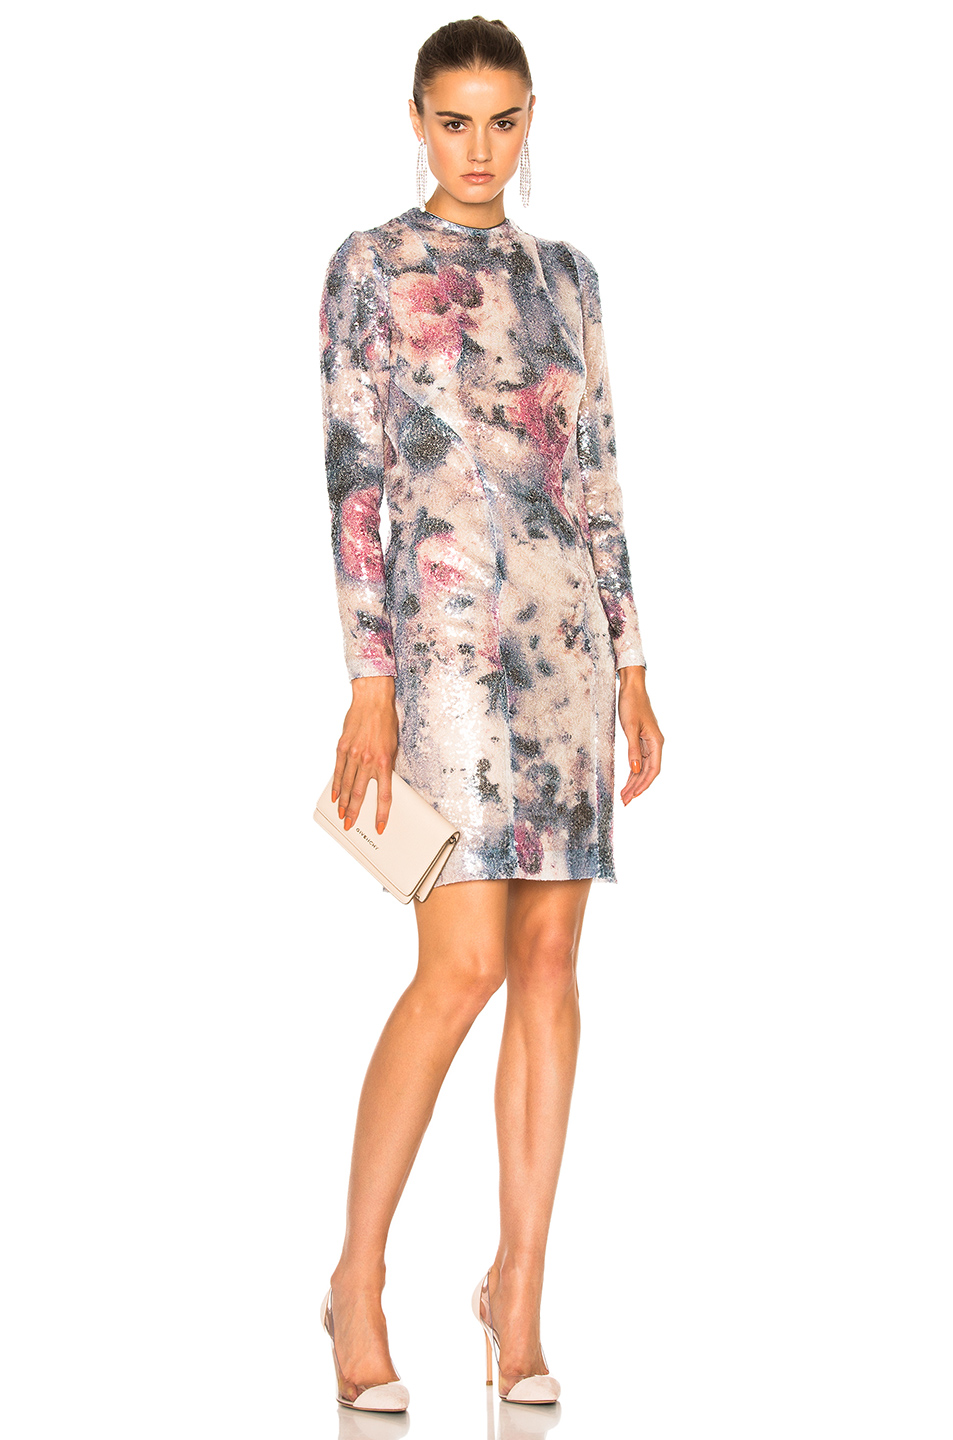 GALVAN Desert Rose Cocktail Dress in Floral,Pink,Abstract,Ombre & Tie Dye